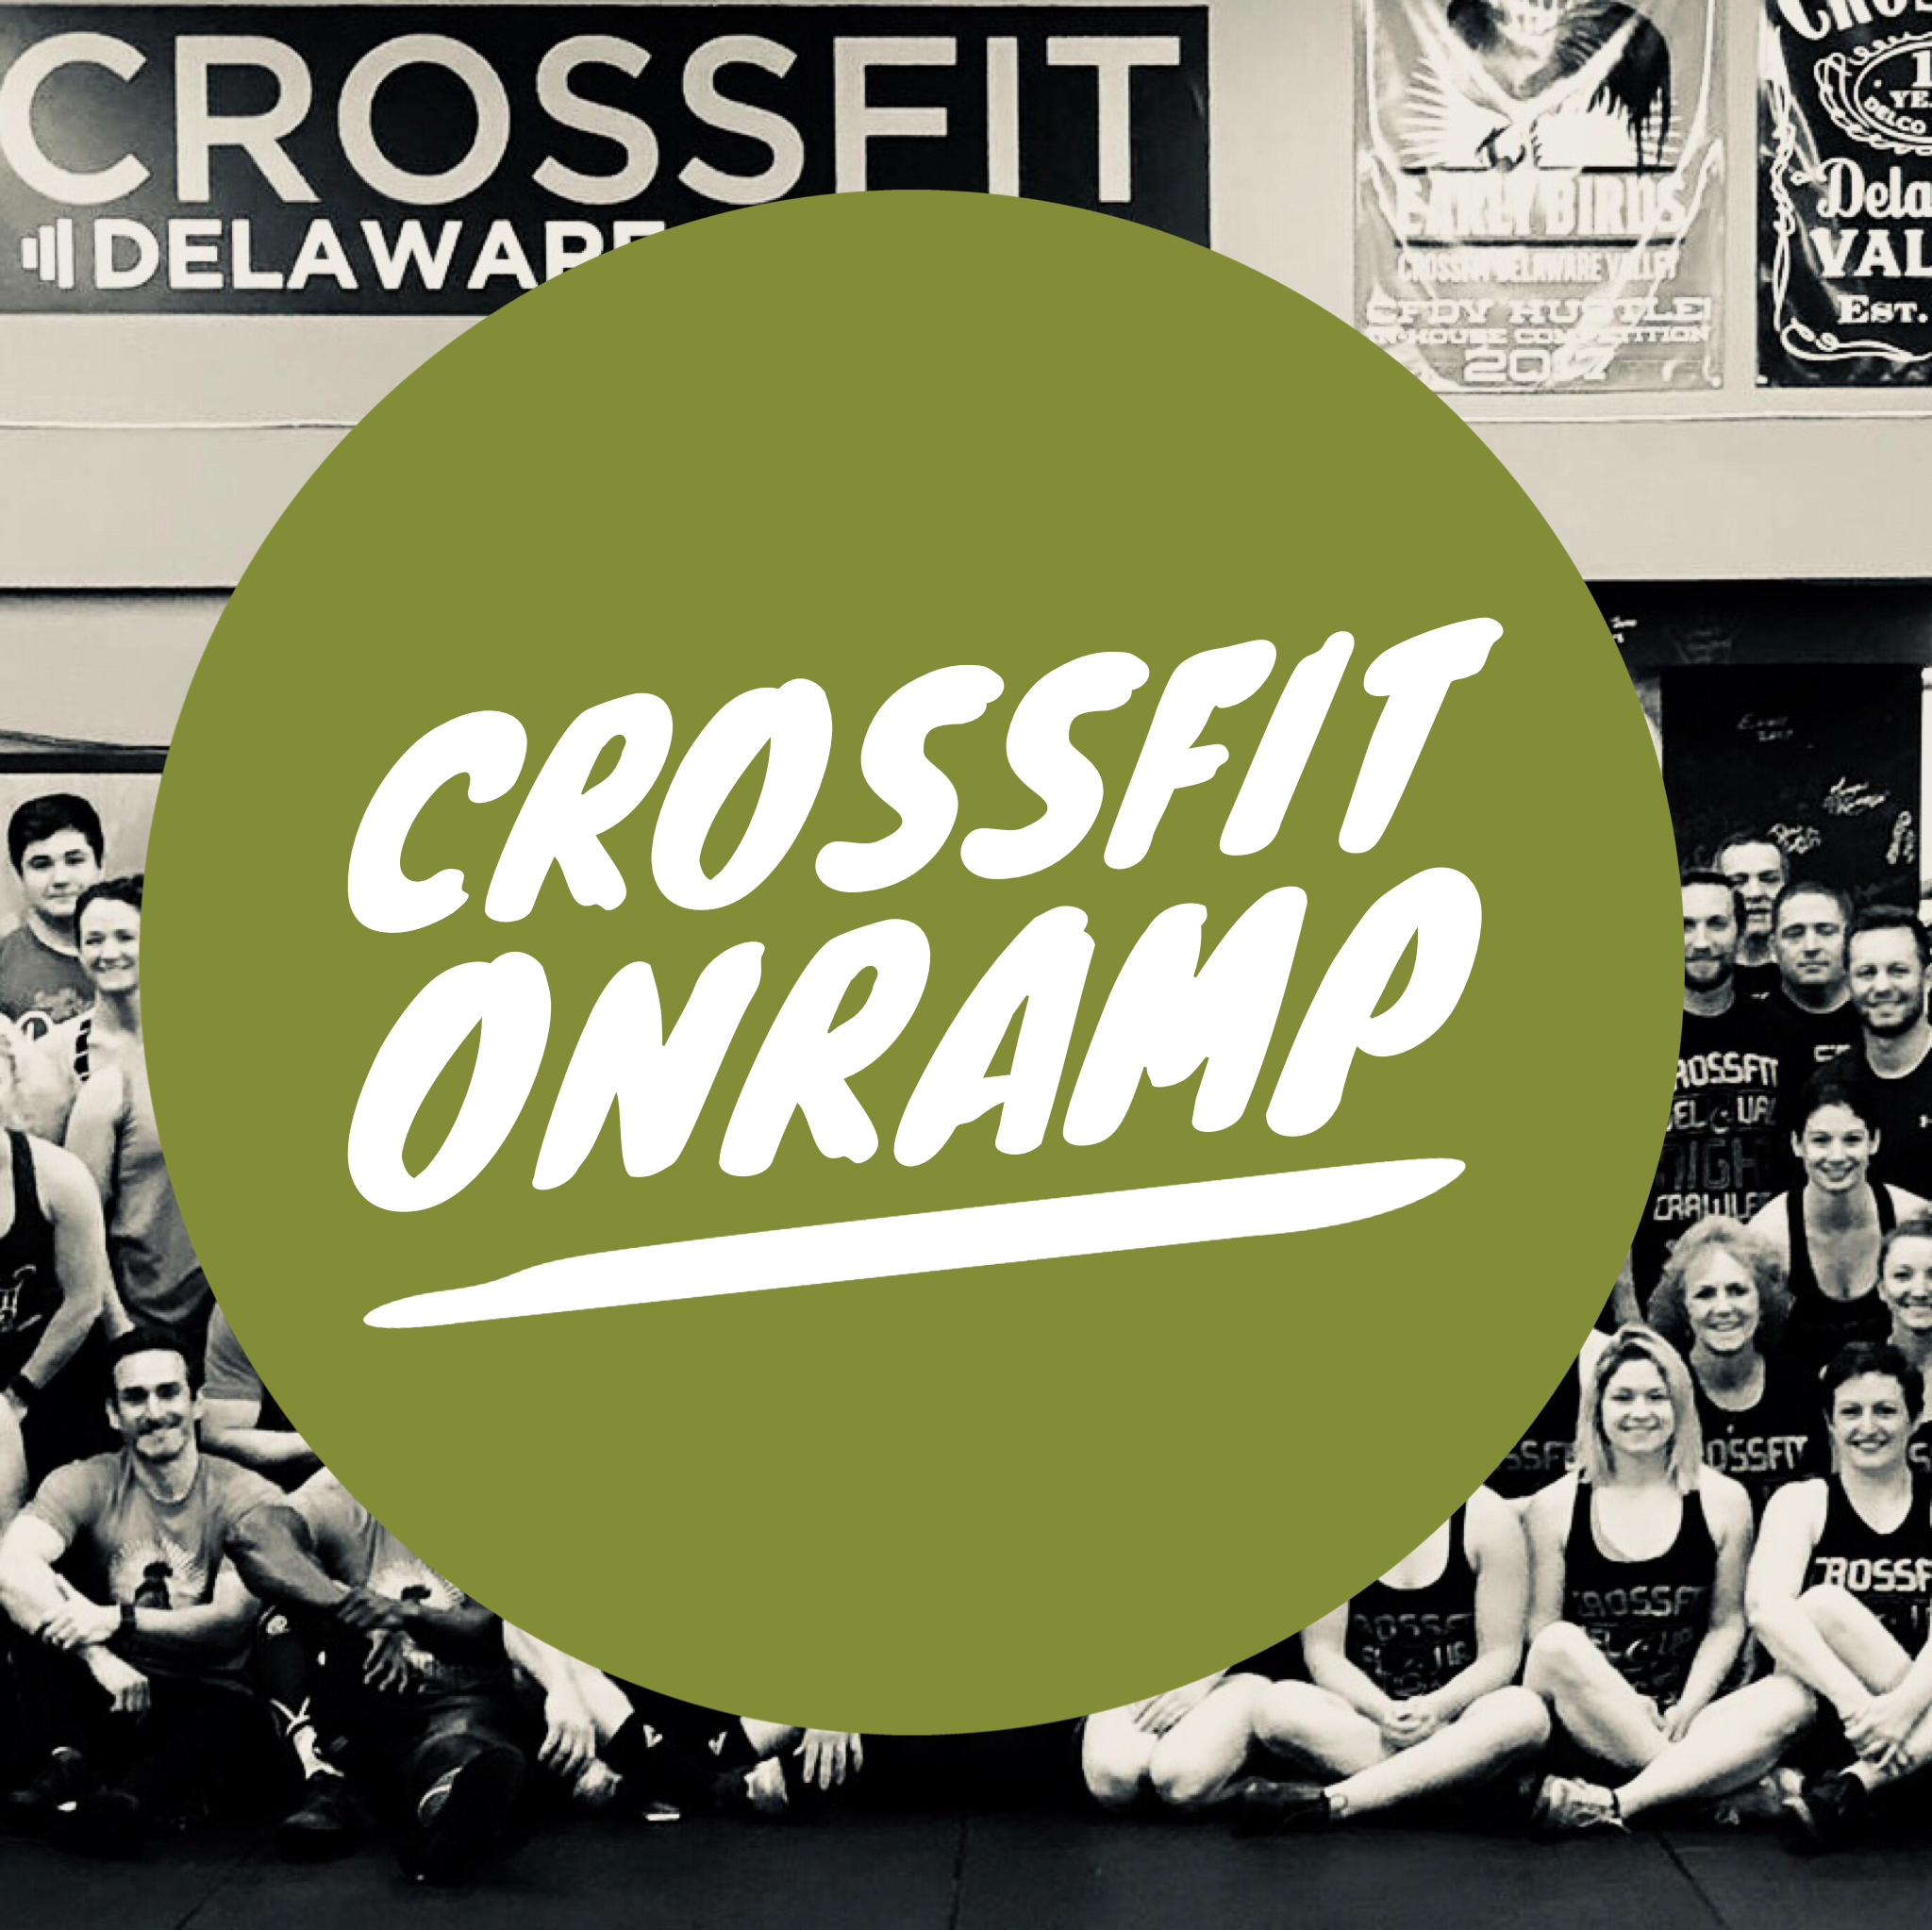 $189 + CrossFit Membership - Three 1-Hour Personal Training sessions, scheduled at your convenienceInitial Goal Setting sessionInBody Biometrics TestingBasic Nutrition Information